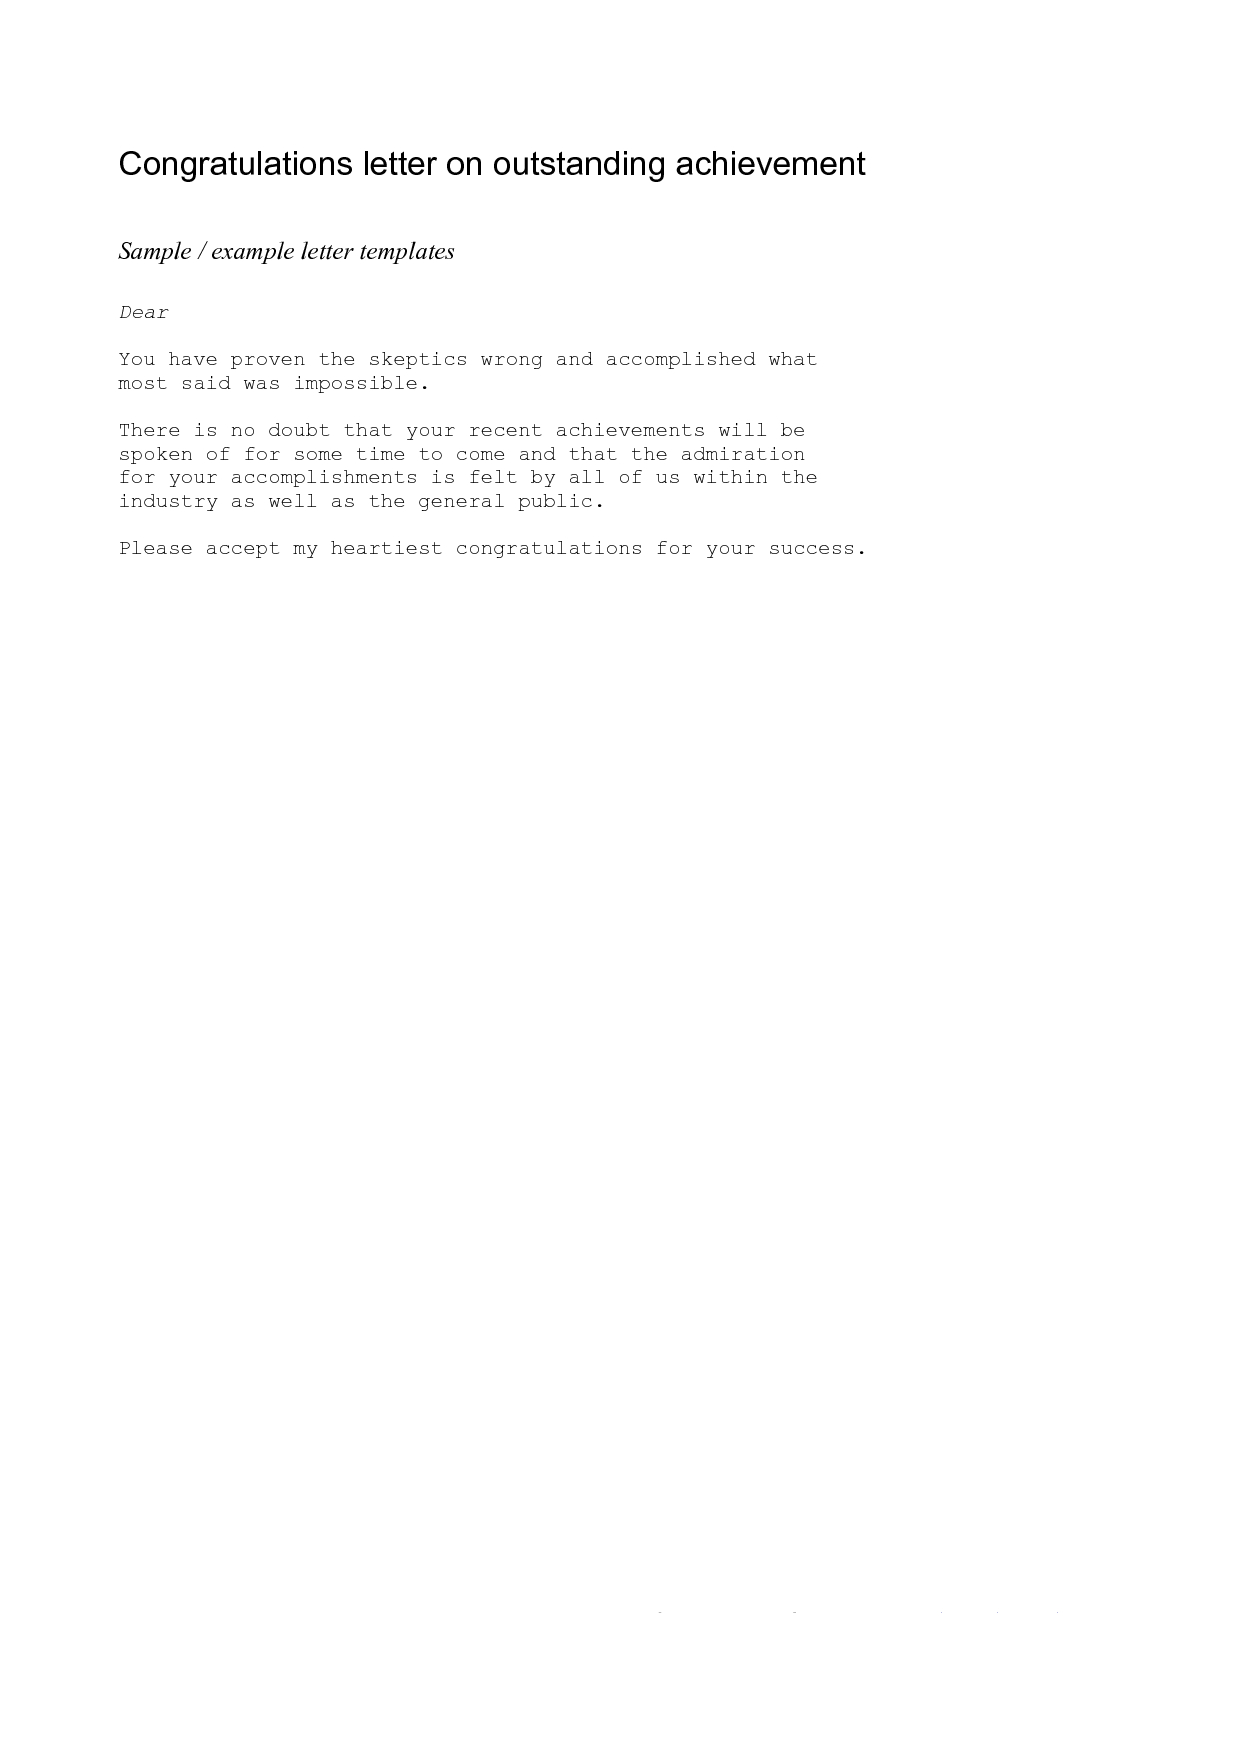 Achievement Congratulations Letter  Example Of A Congratulations Regarding Supermarket Bag Packing Letter Template